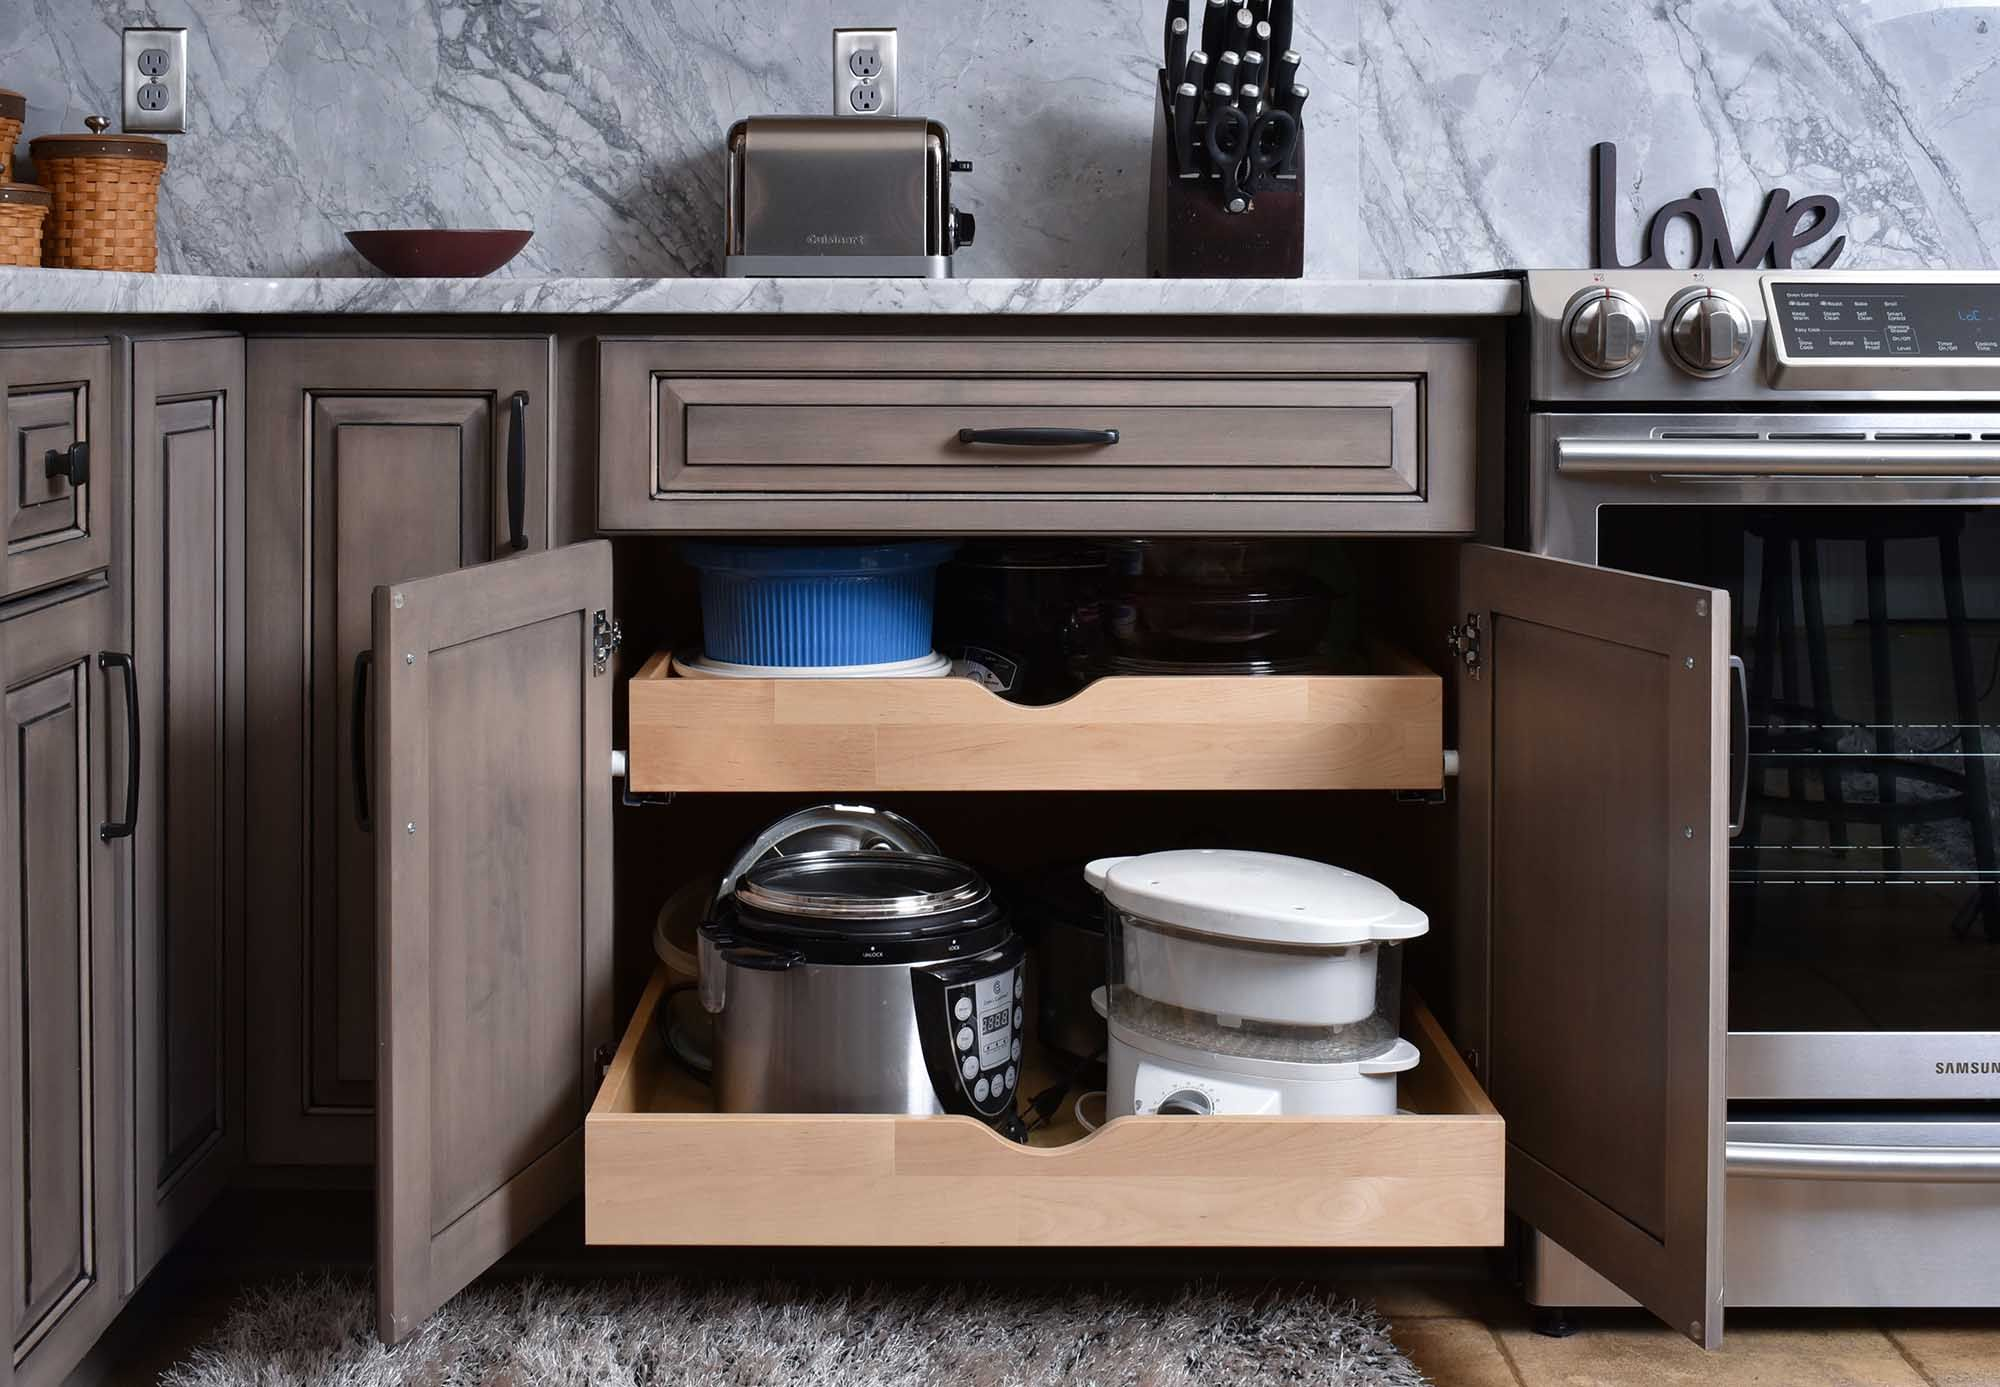 Kitchen Remodeling Columbia Sc Kitchen Remodeling Near Me Kitchen Tune Up In 2020 Organizing Your Home Kitchen Cabinets Recycling Containers